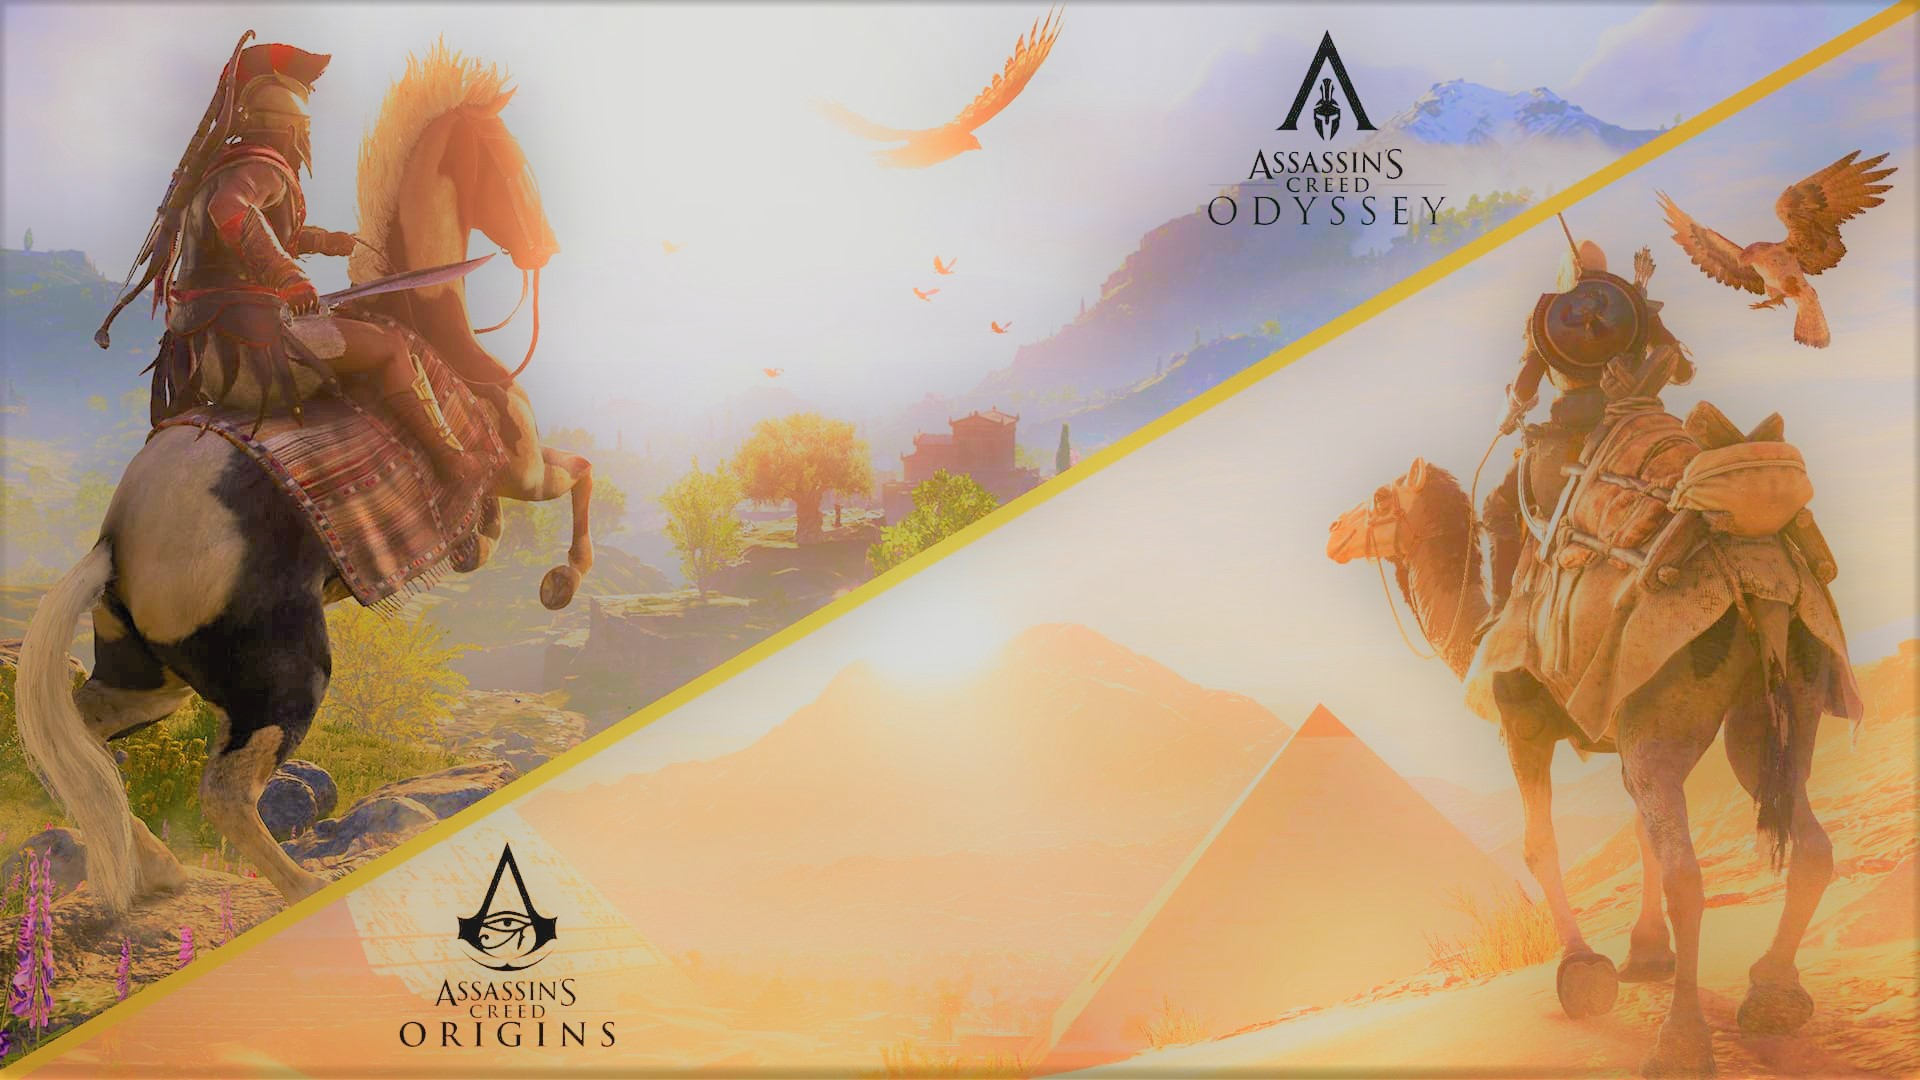 Assassin's Creed Origins vs Odyssey | Which is Better?